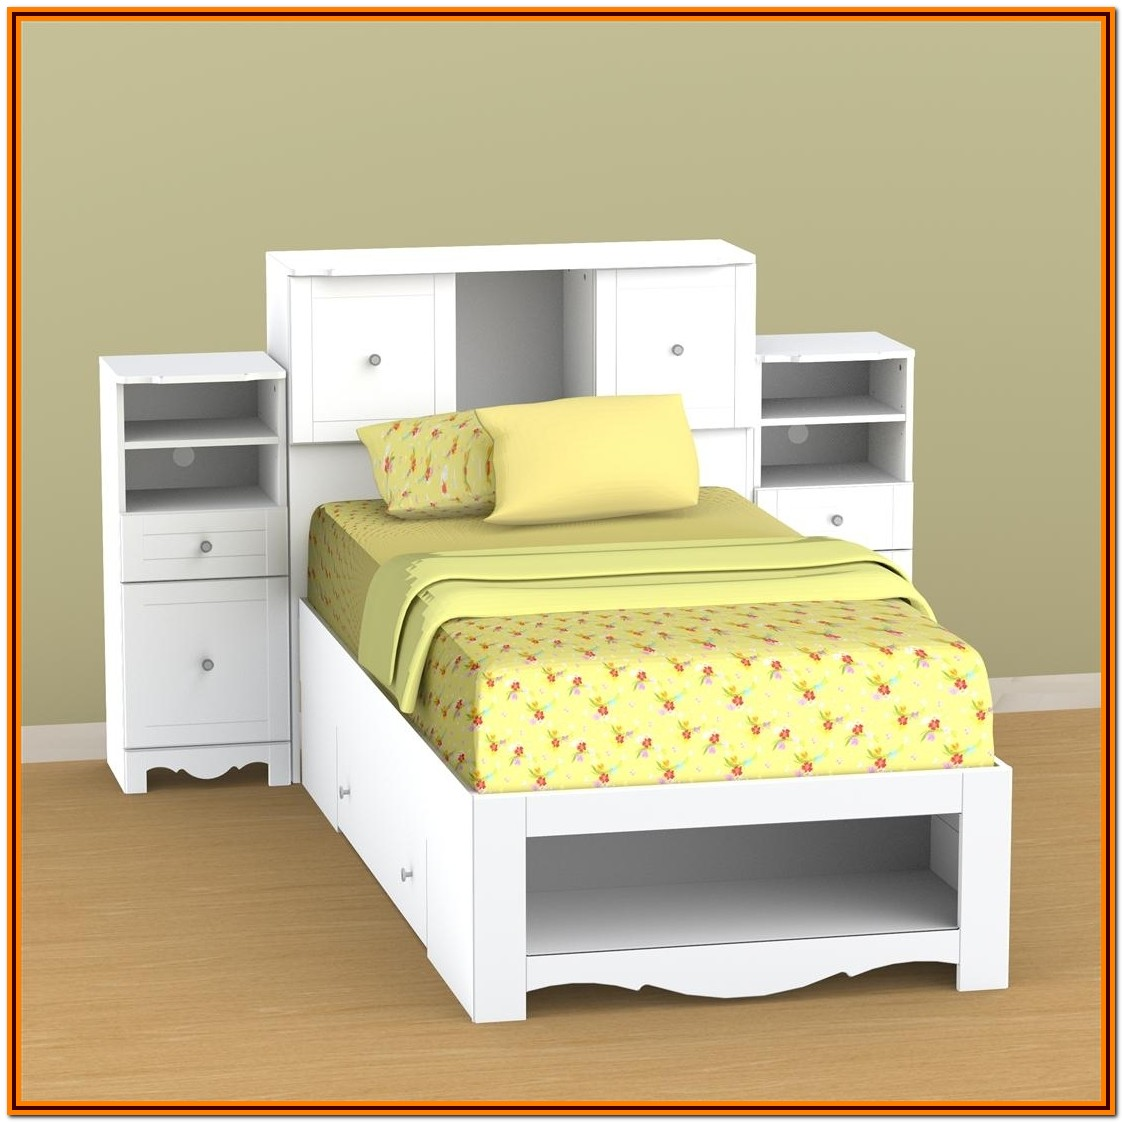 Ikea Beds With Storage Space